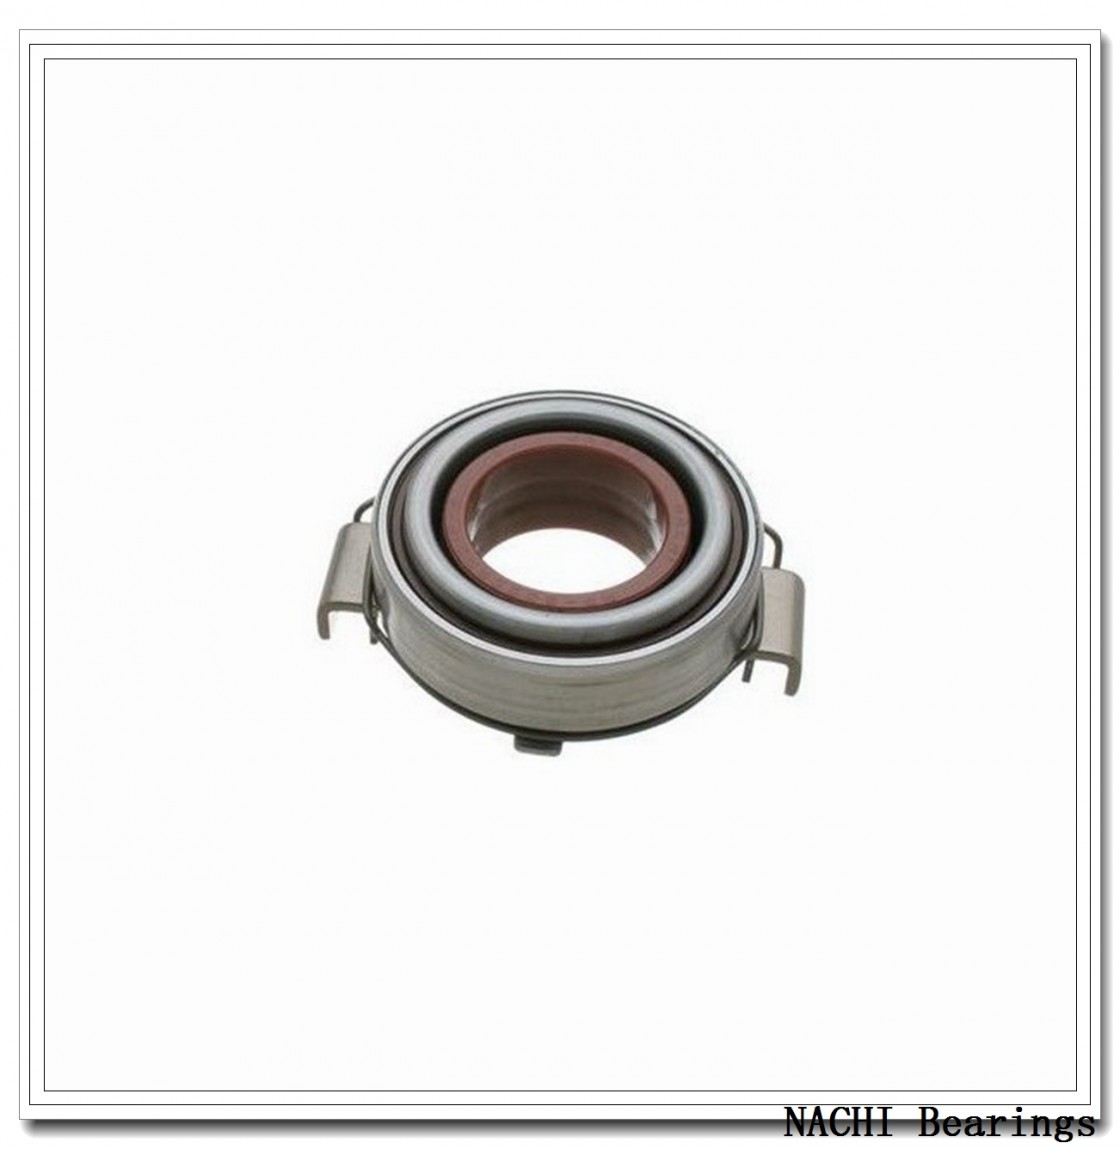 60 mm x 78 mm x 10 mm  NACHI 6812NR deep groove ball bearings